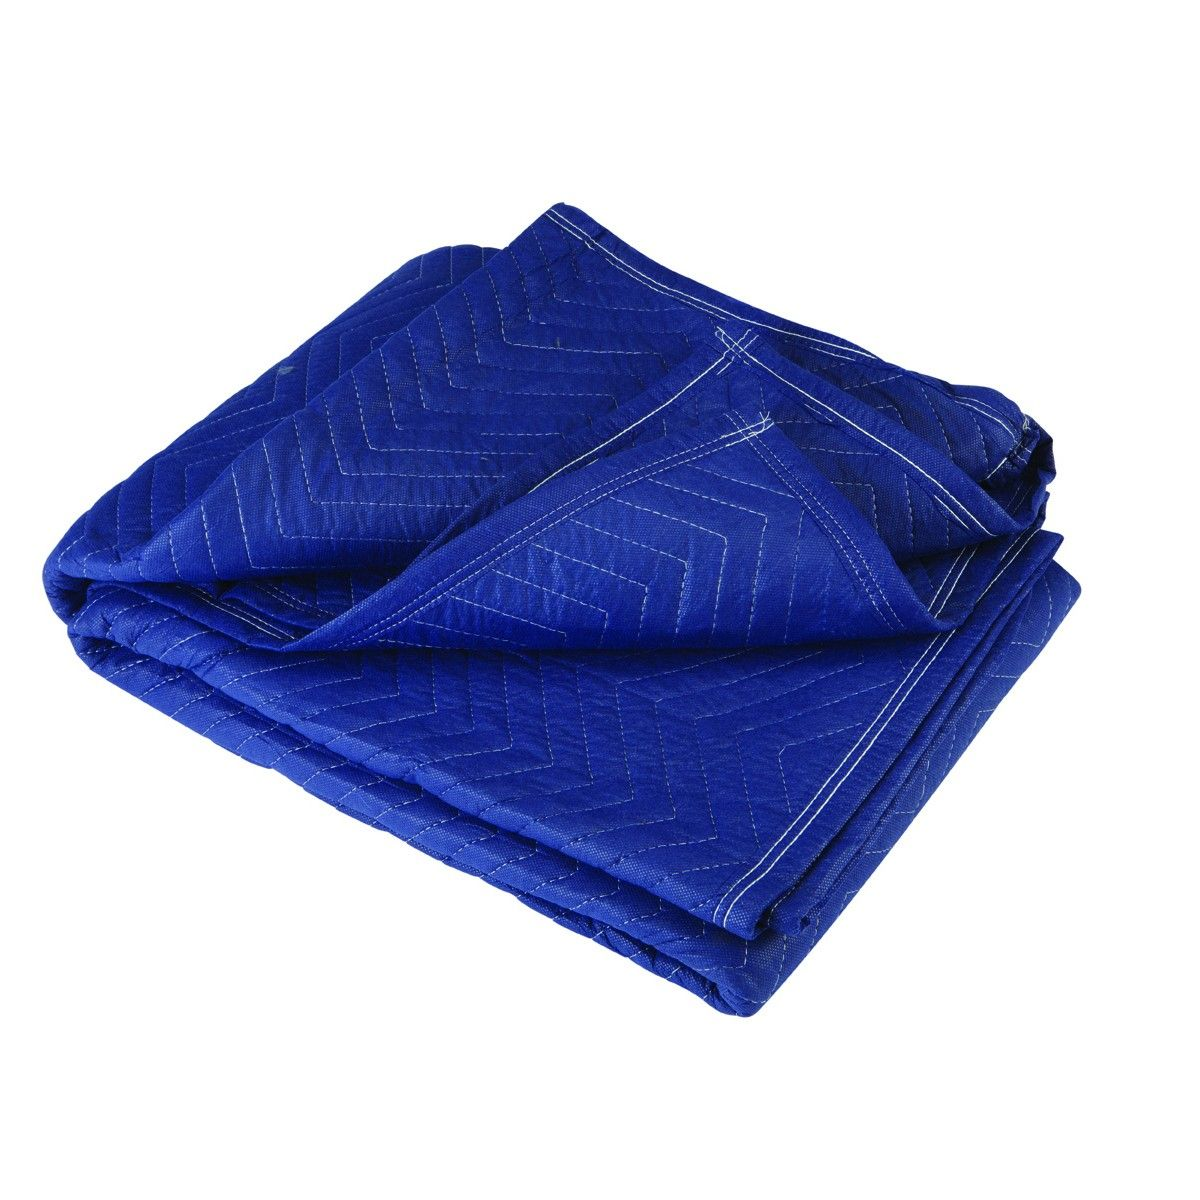 72 X 80 Moversblanket Moving Blankets Blanket